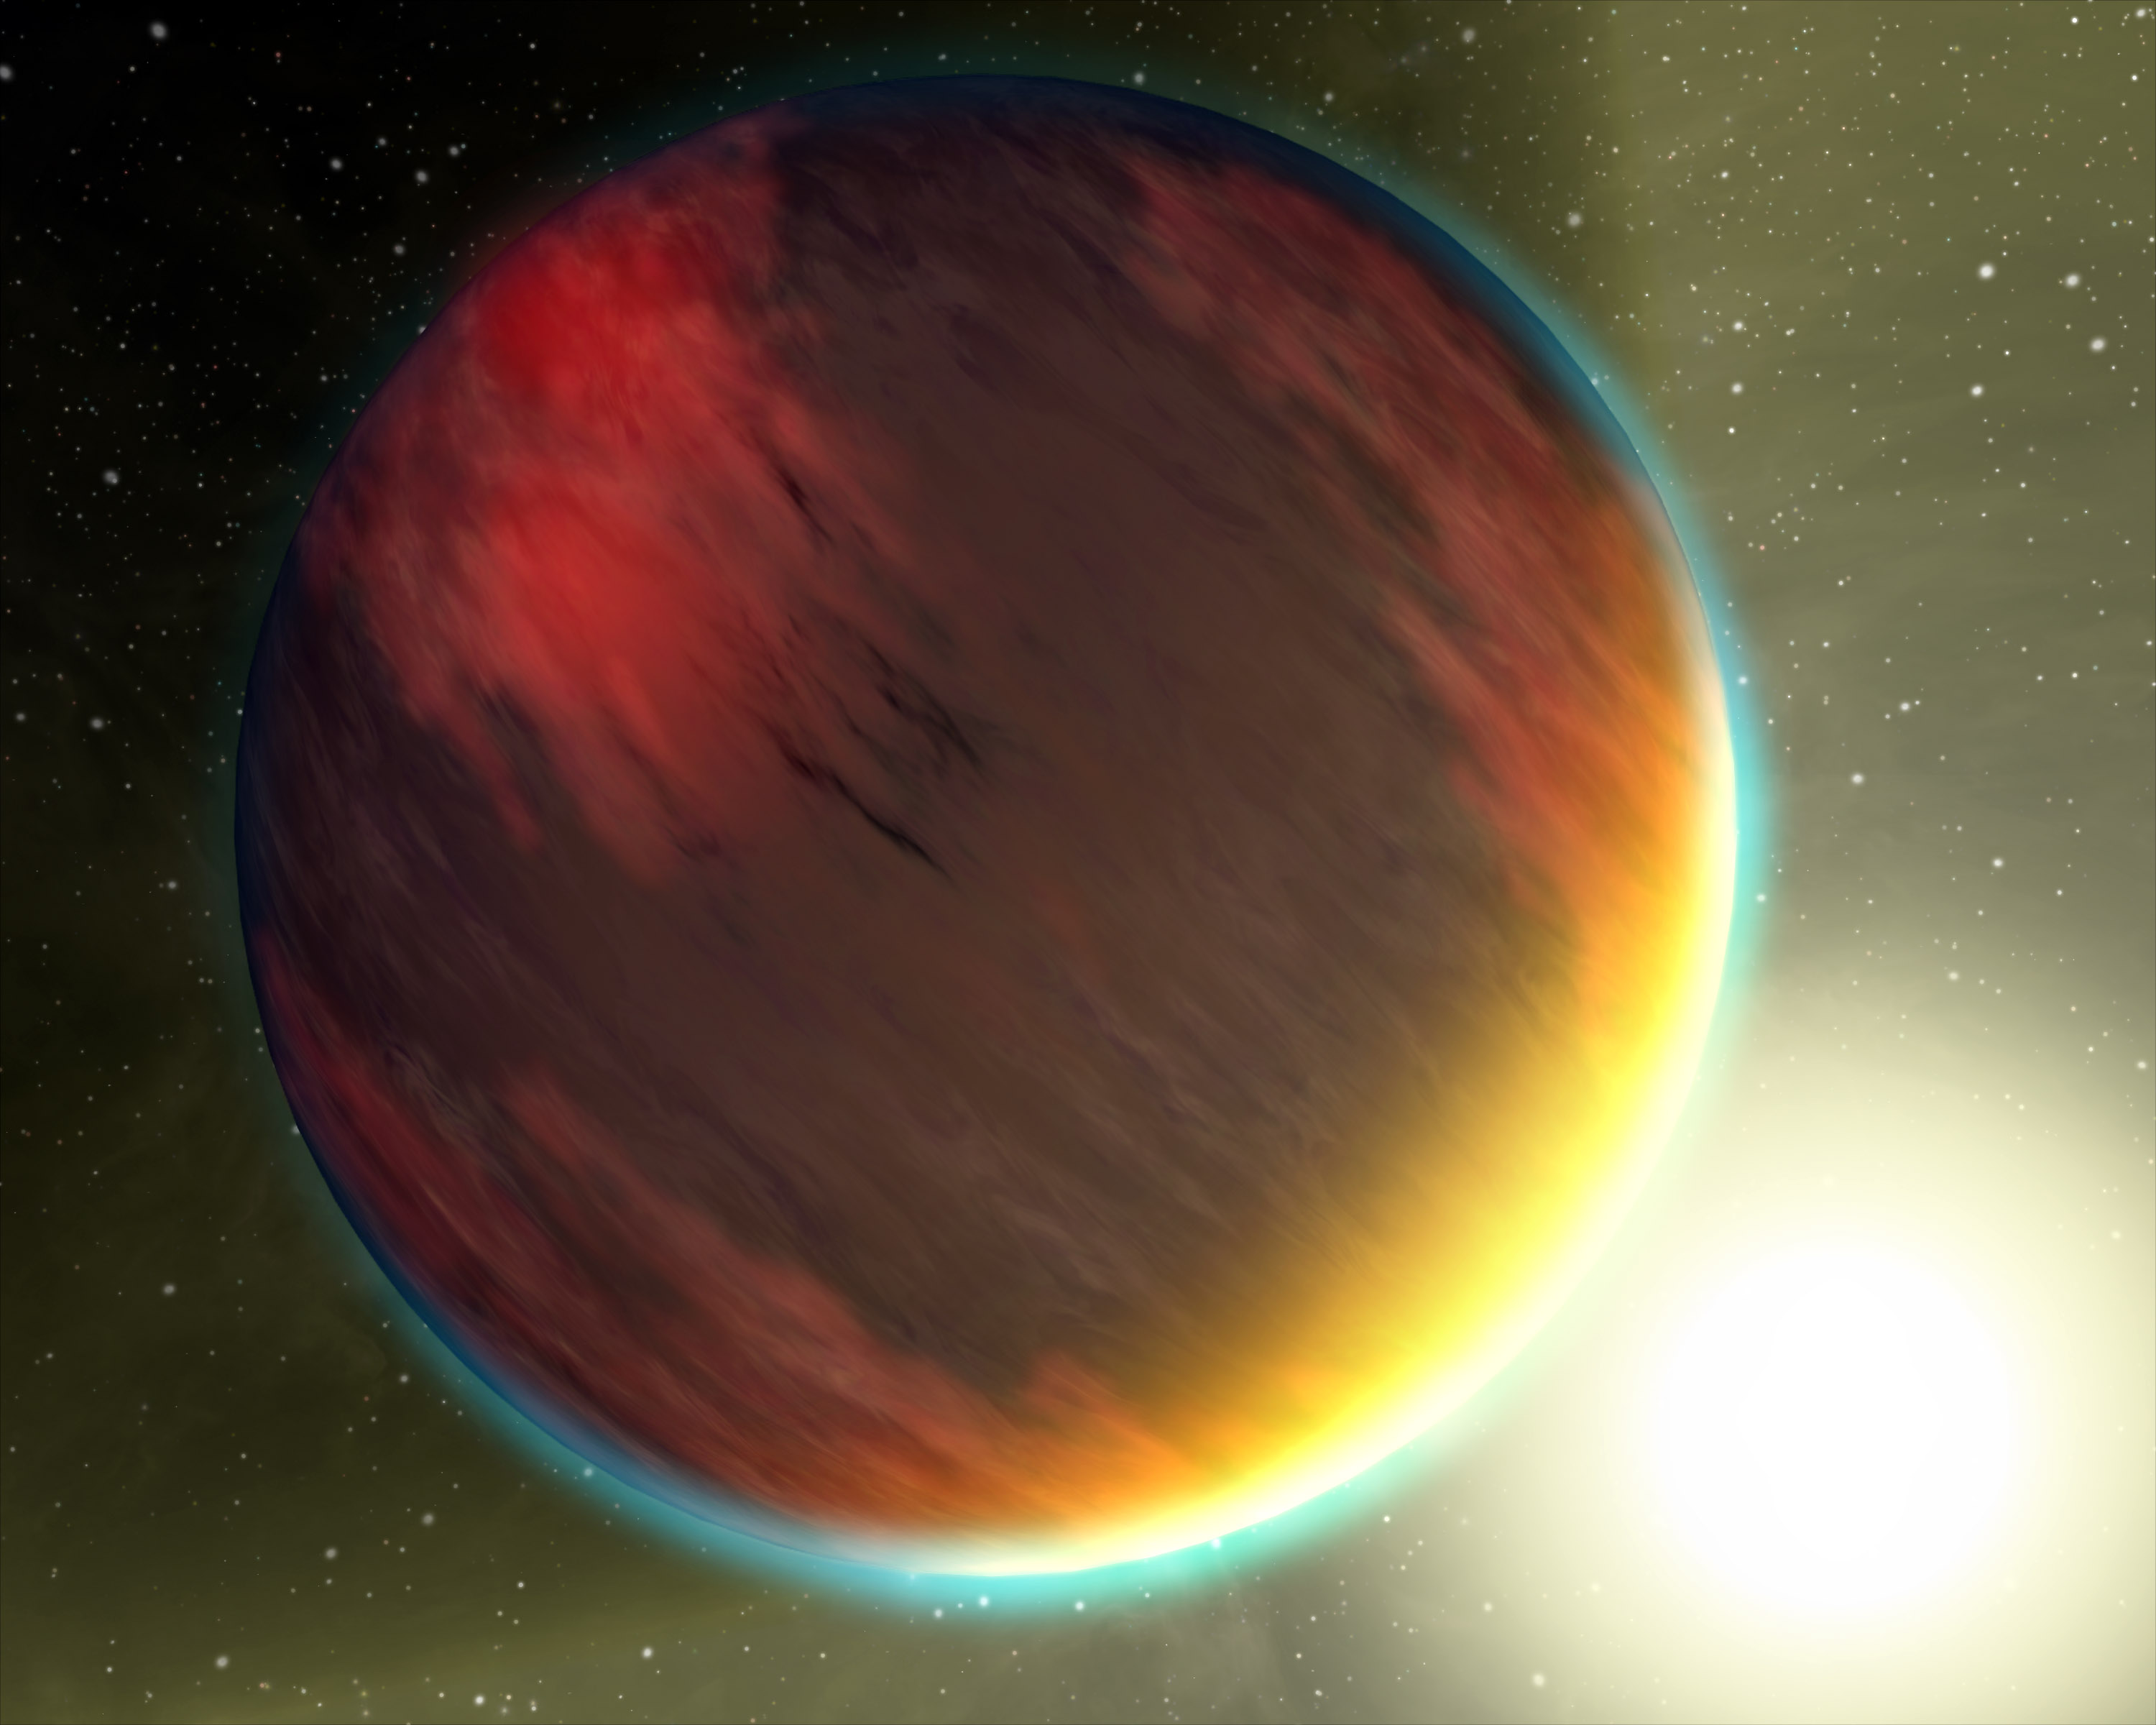 IAU astronomers reveal first batch of names for alien planets